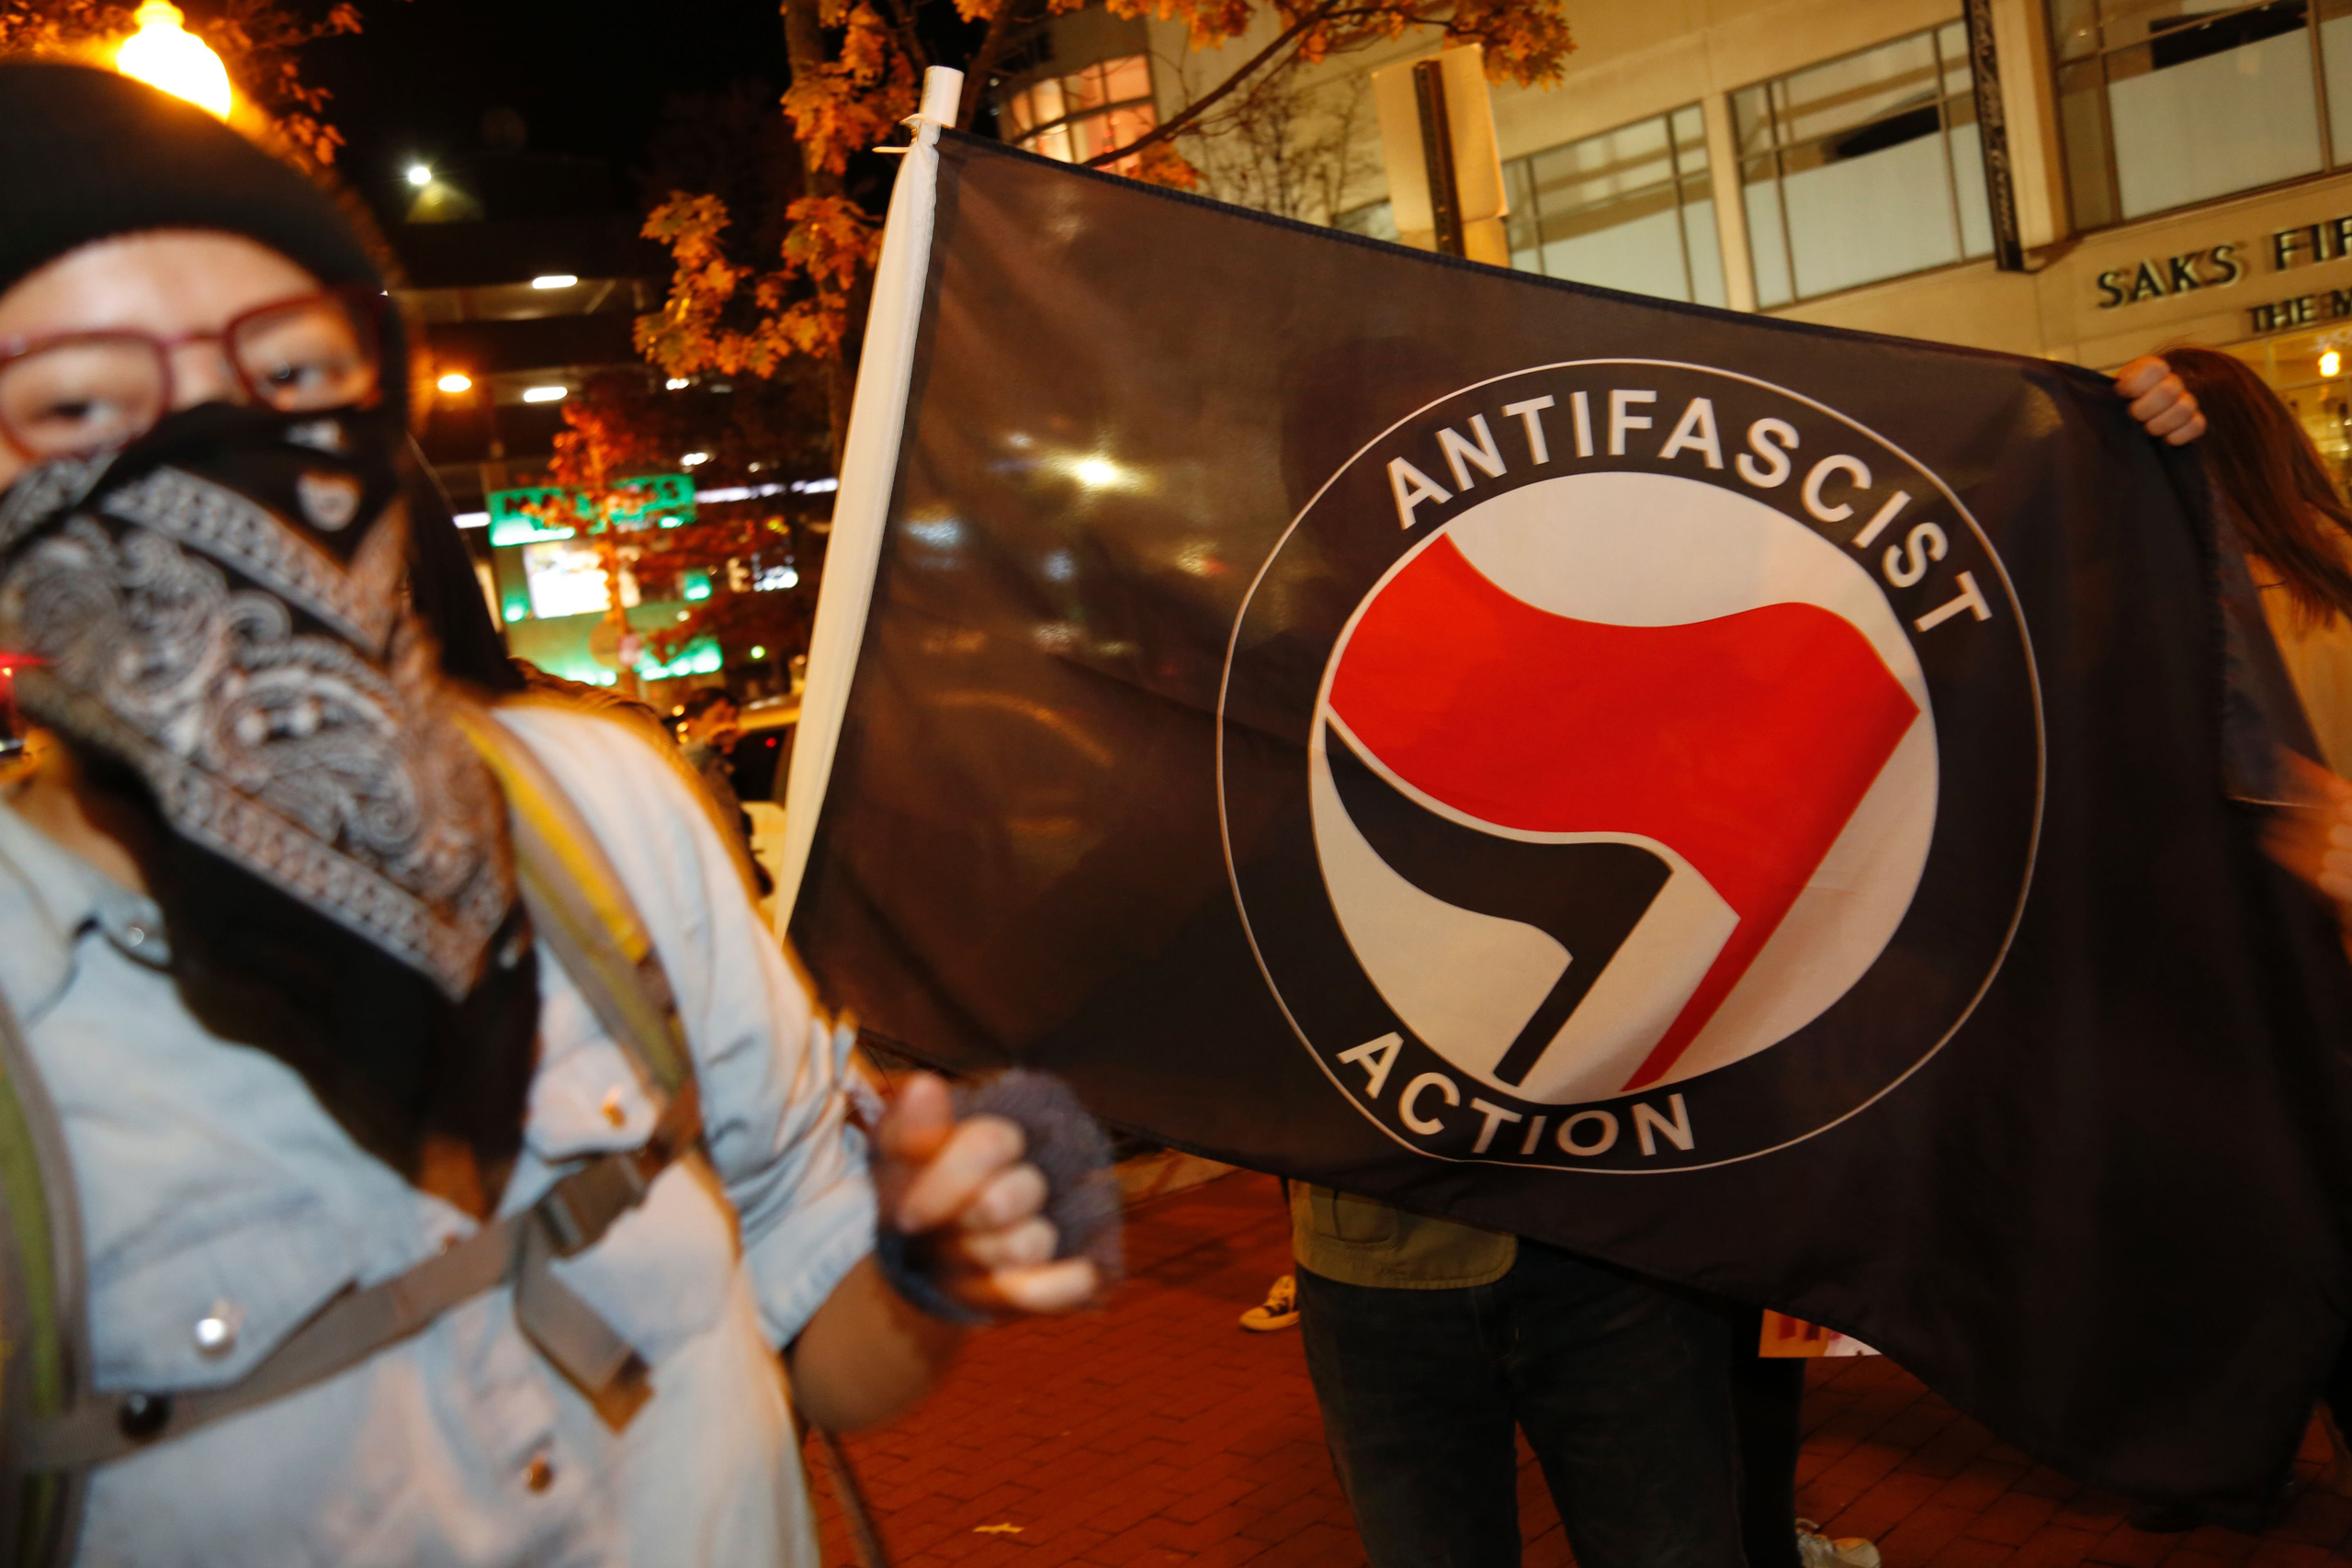 Members of D.C. Antifascist Coalition protest in opposition to a conference by the National Policy Institute in front of the Magliano's restaurant in Washington, D.C., on Nov. 18, 2016